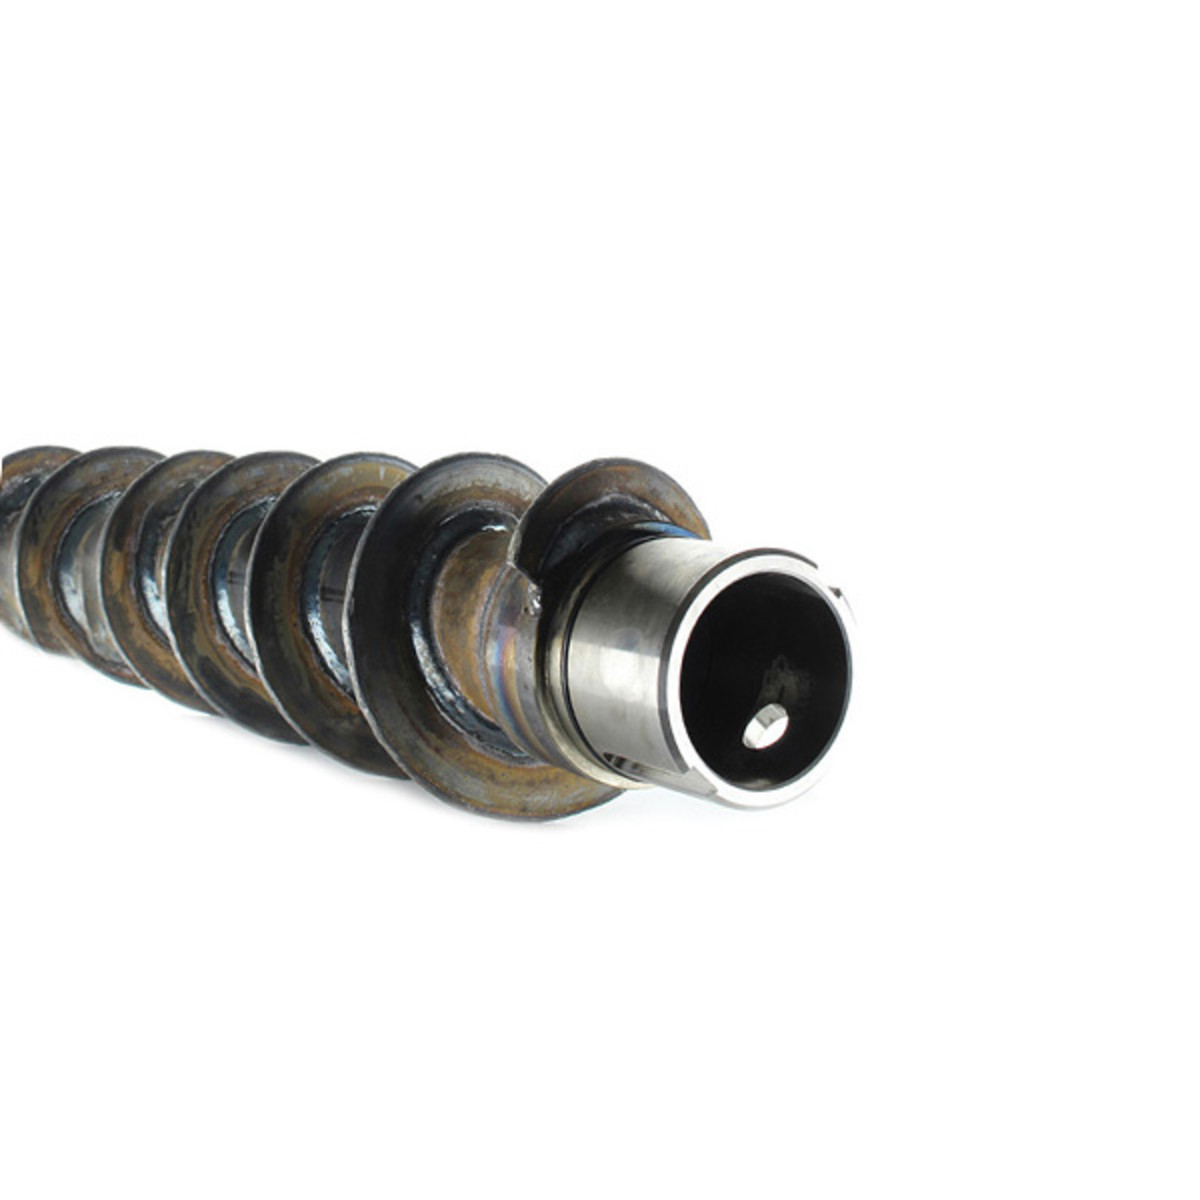 Hole Products - Hollow Stem Augers